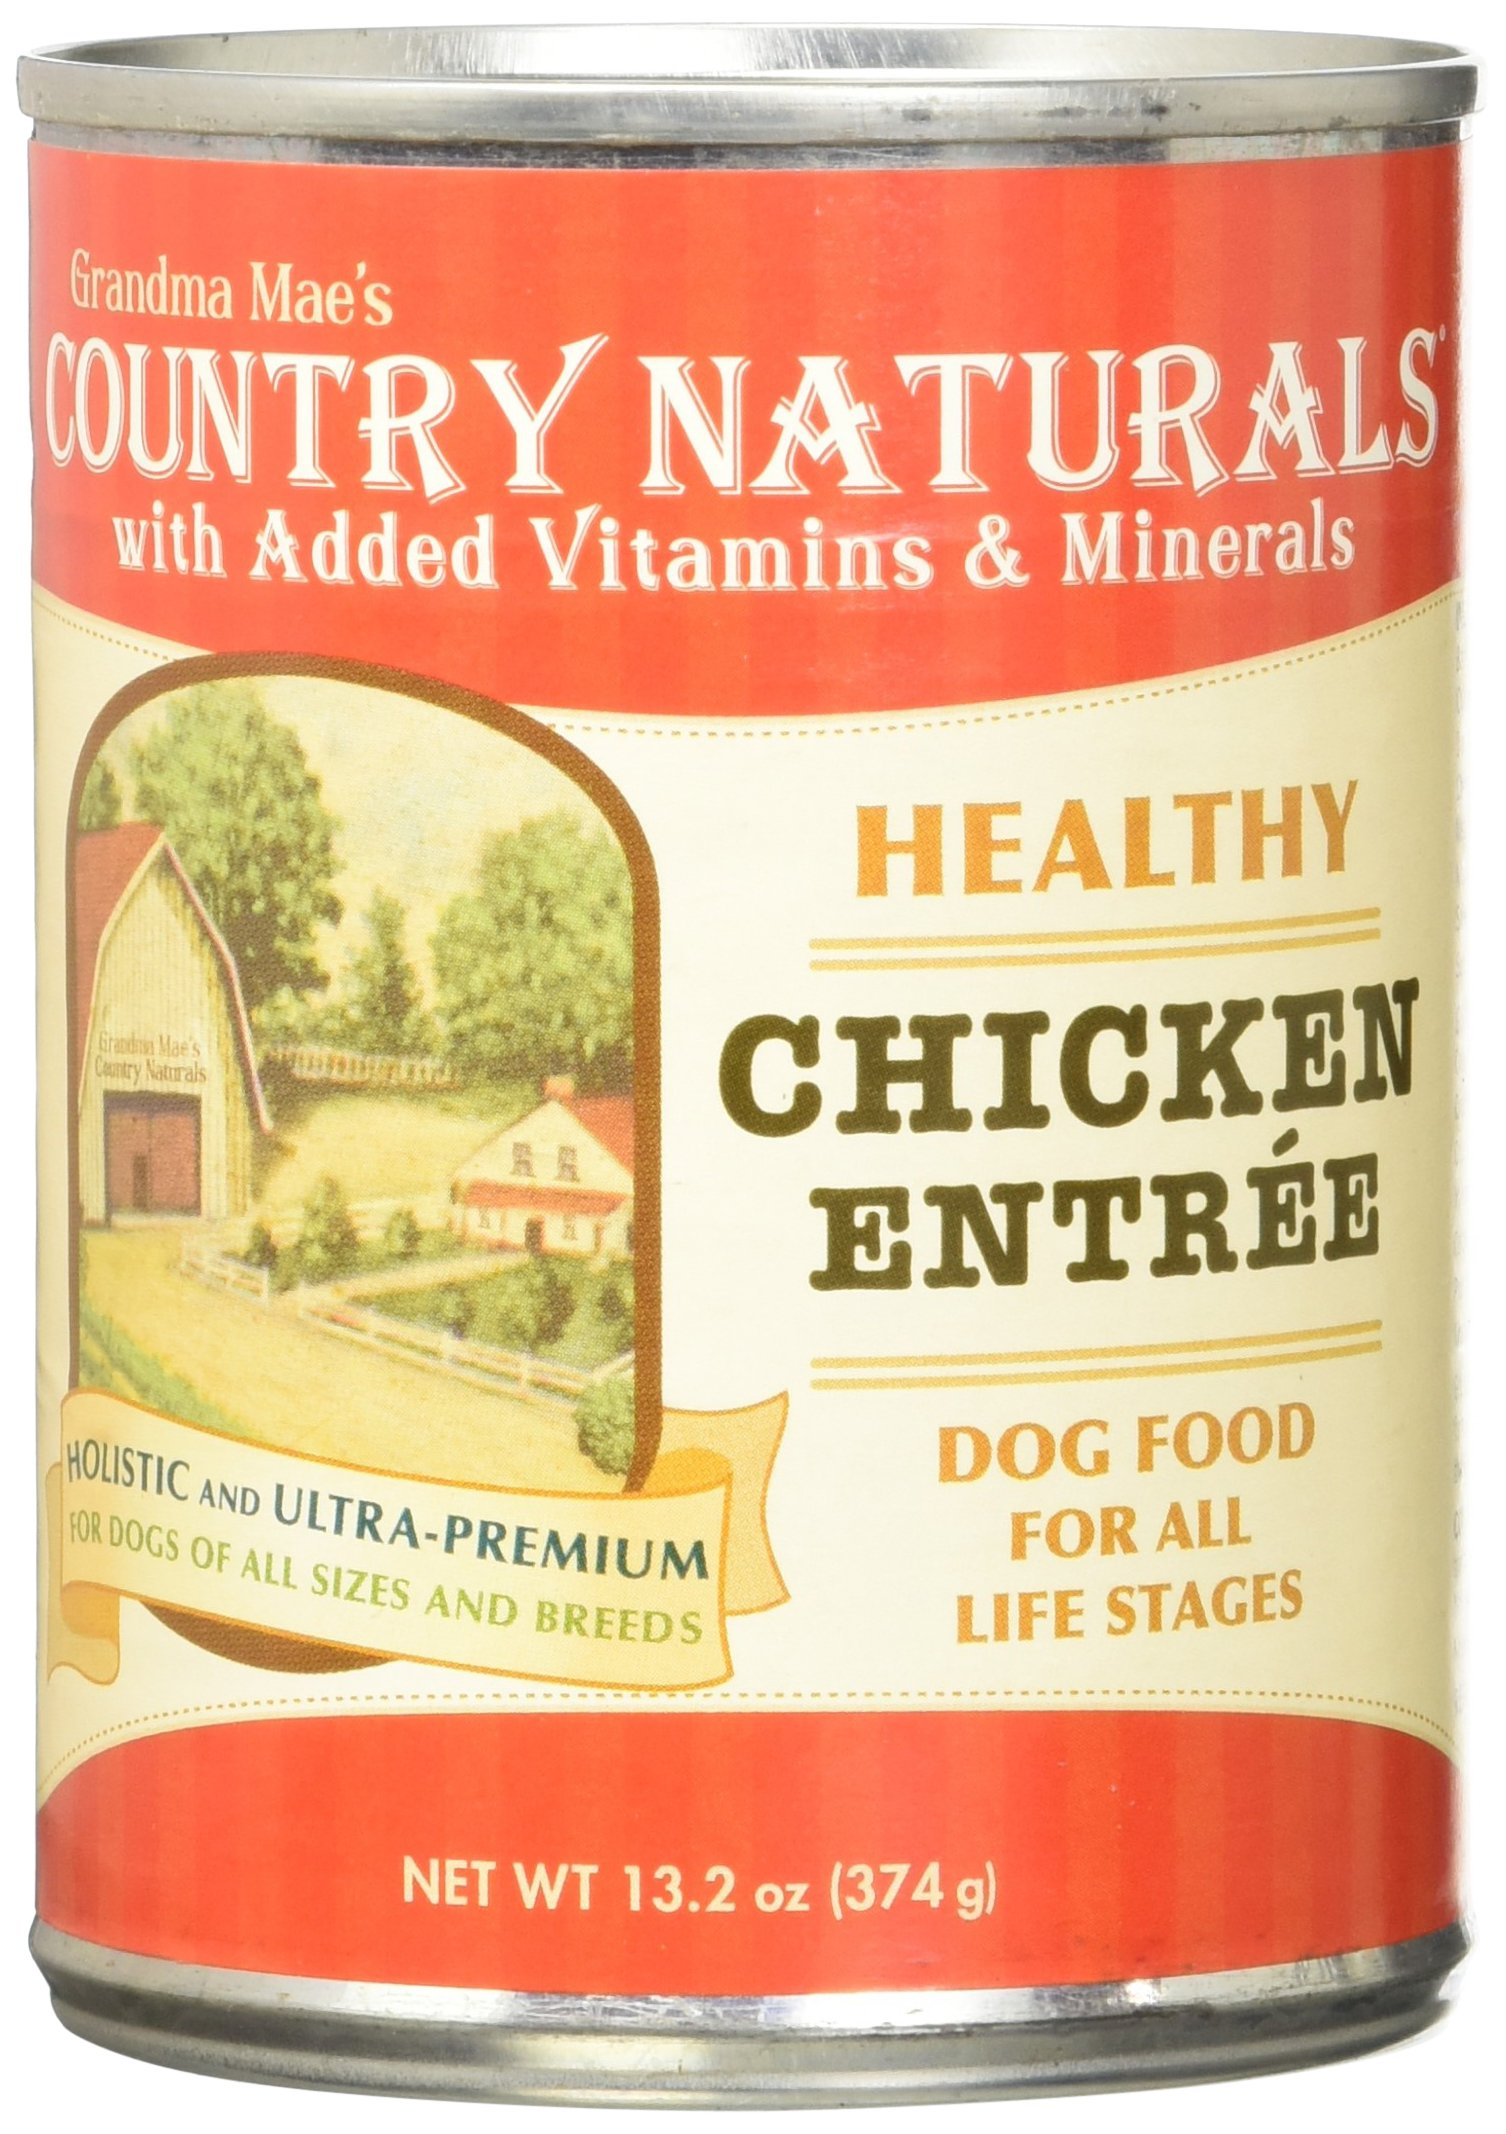 Grandma Mae'S 79700162 13.2 Oz Healthy Entrees For Dogs Chicken Entree (12 Pack), One Size by Grandma Mae's